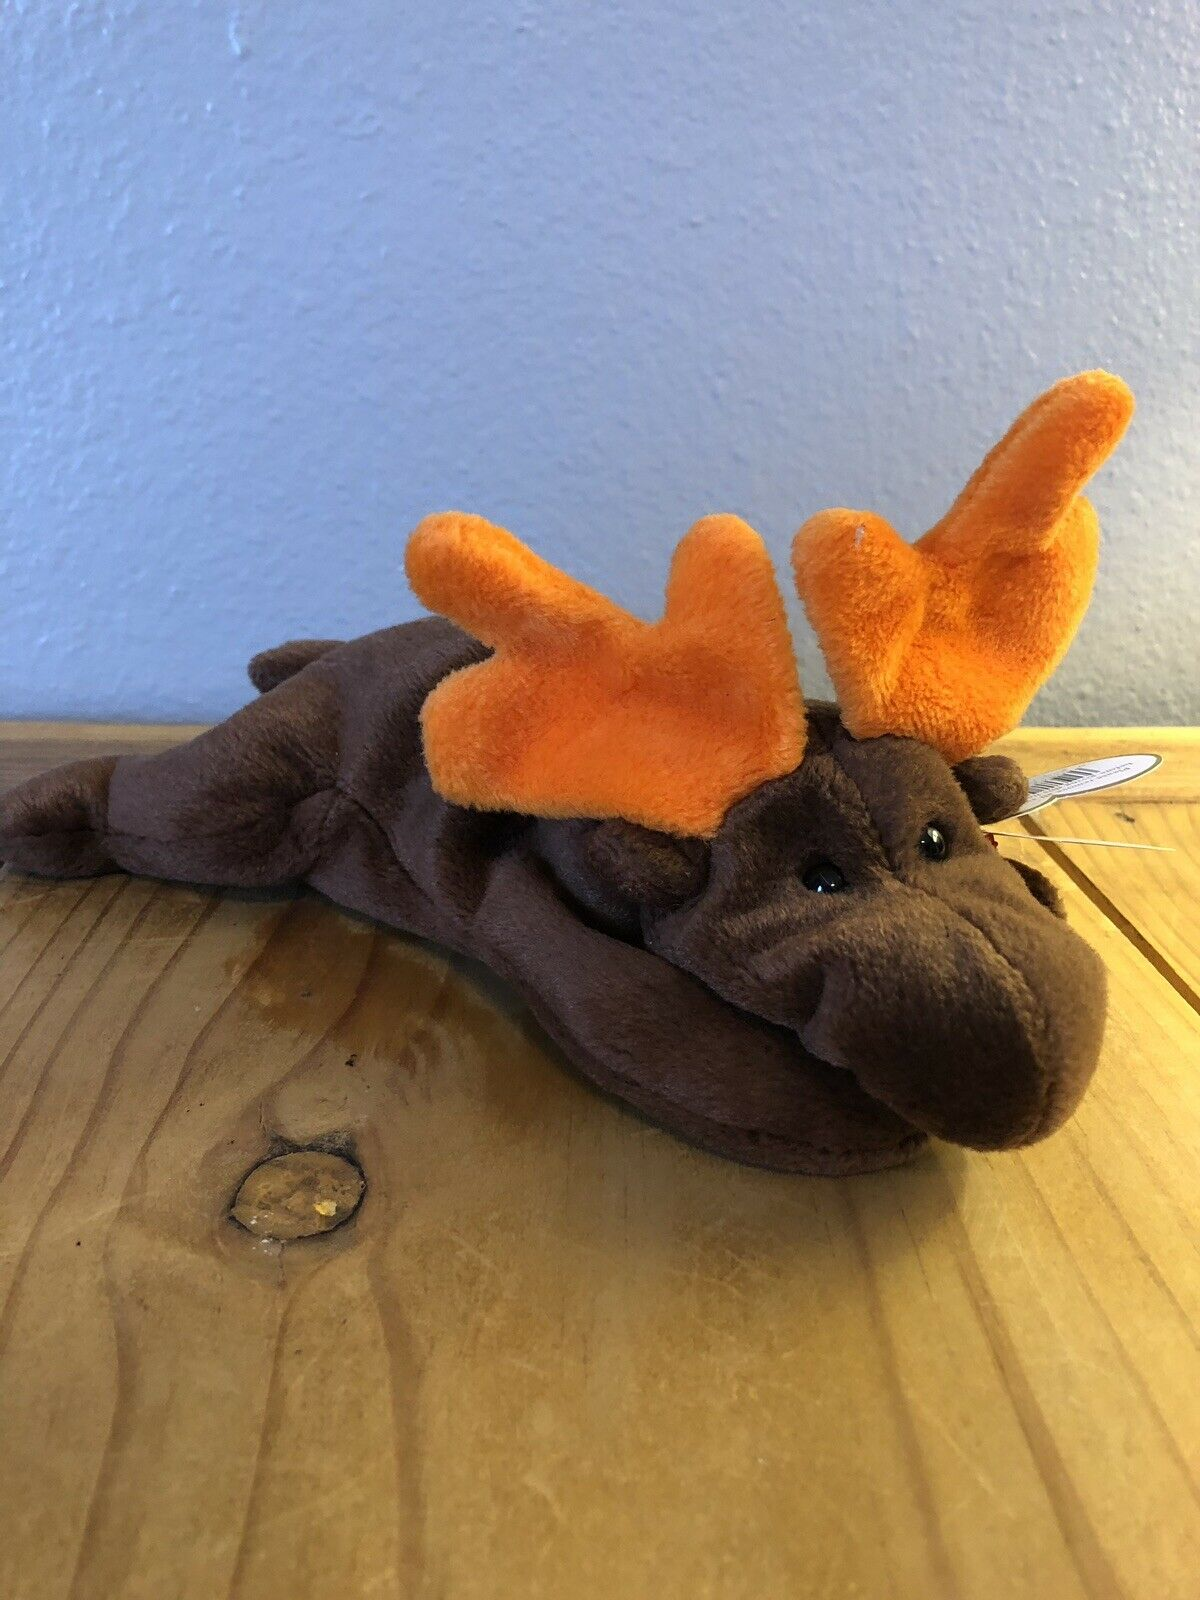 Ty Beanie Babies Original Retired 1993 Chocolate the Moose PVC Pellets